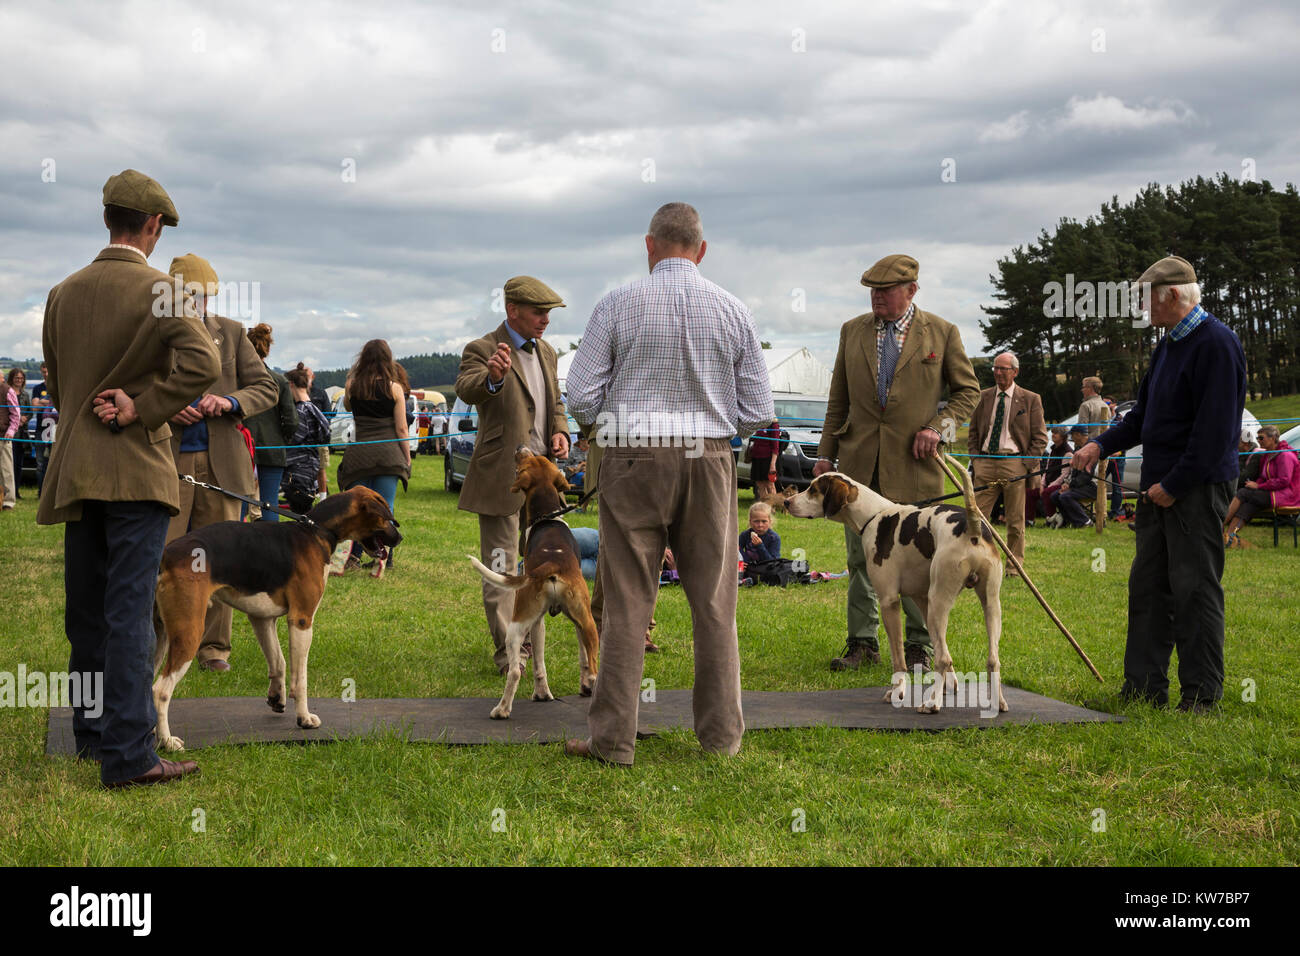 Judging fox hounds, Bellingham Show, Bellingham, Northumberland, UK, August 2017 - Stock Image